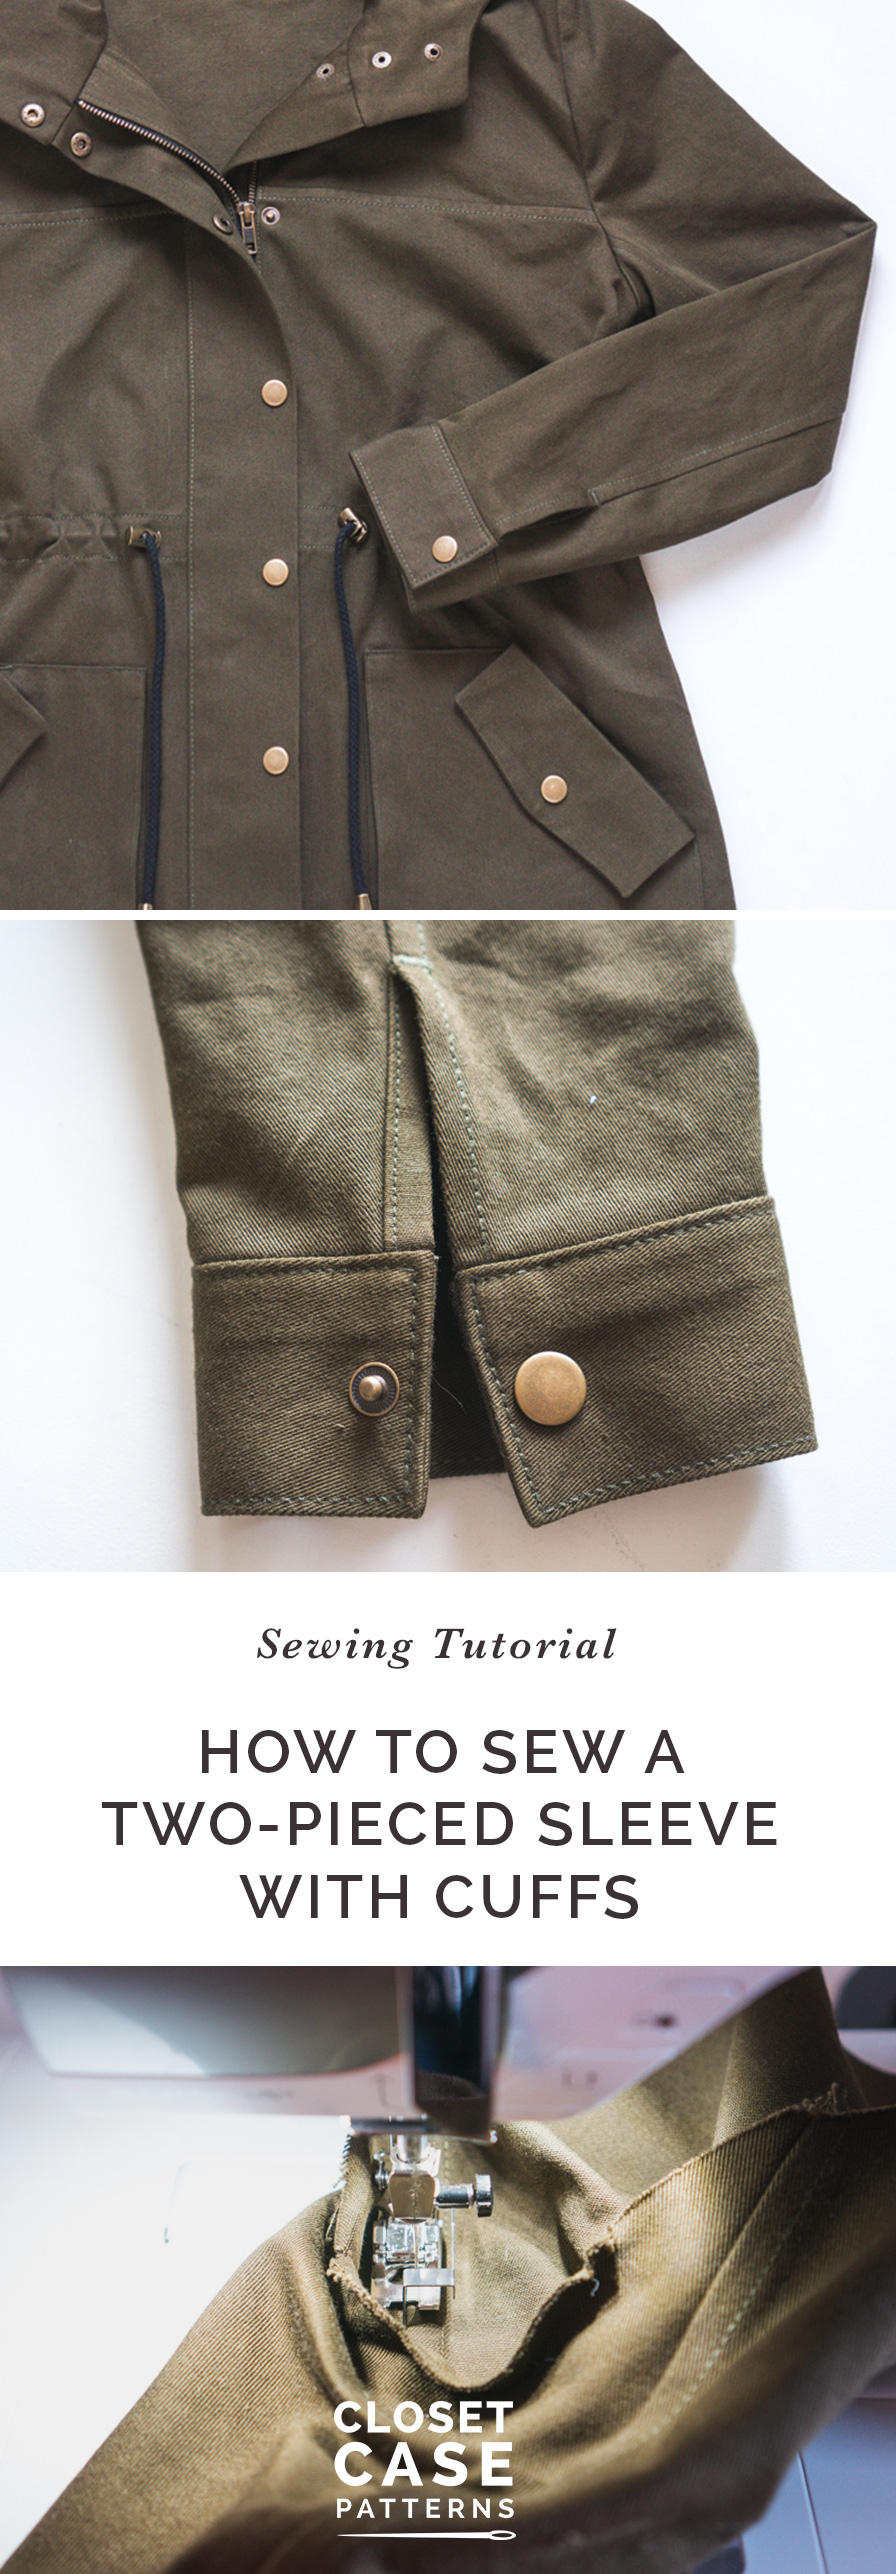 Learn to sew and set in a two piece sleeve with cuffs with our sewing tutorial!